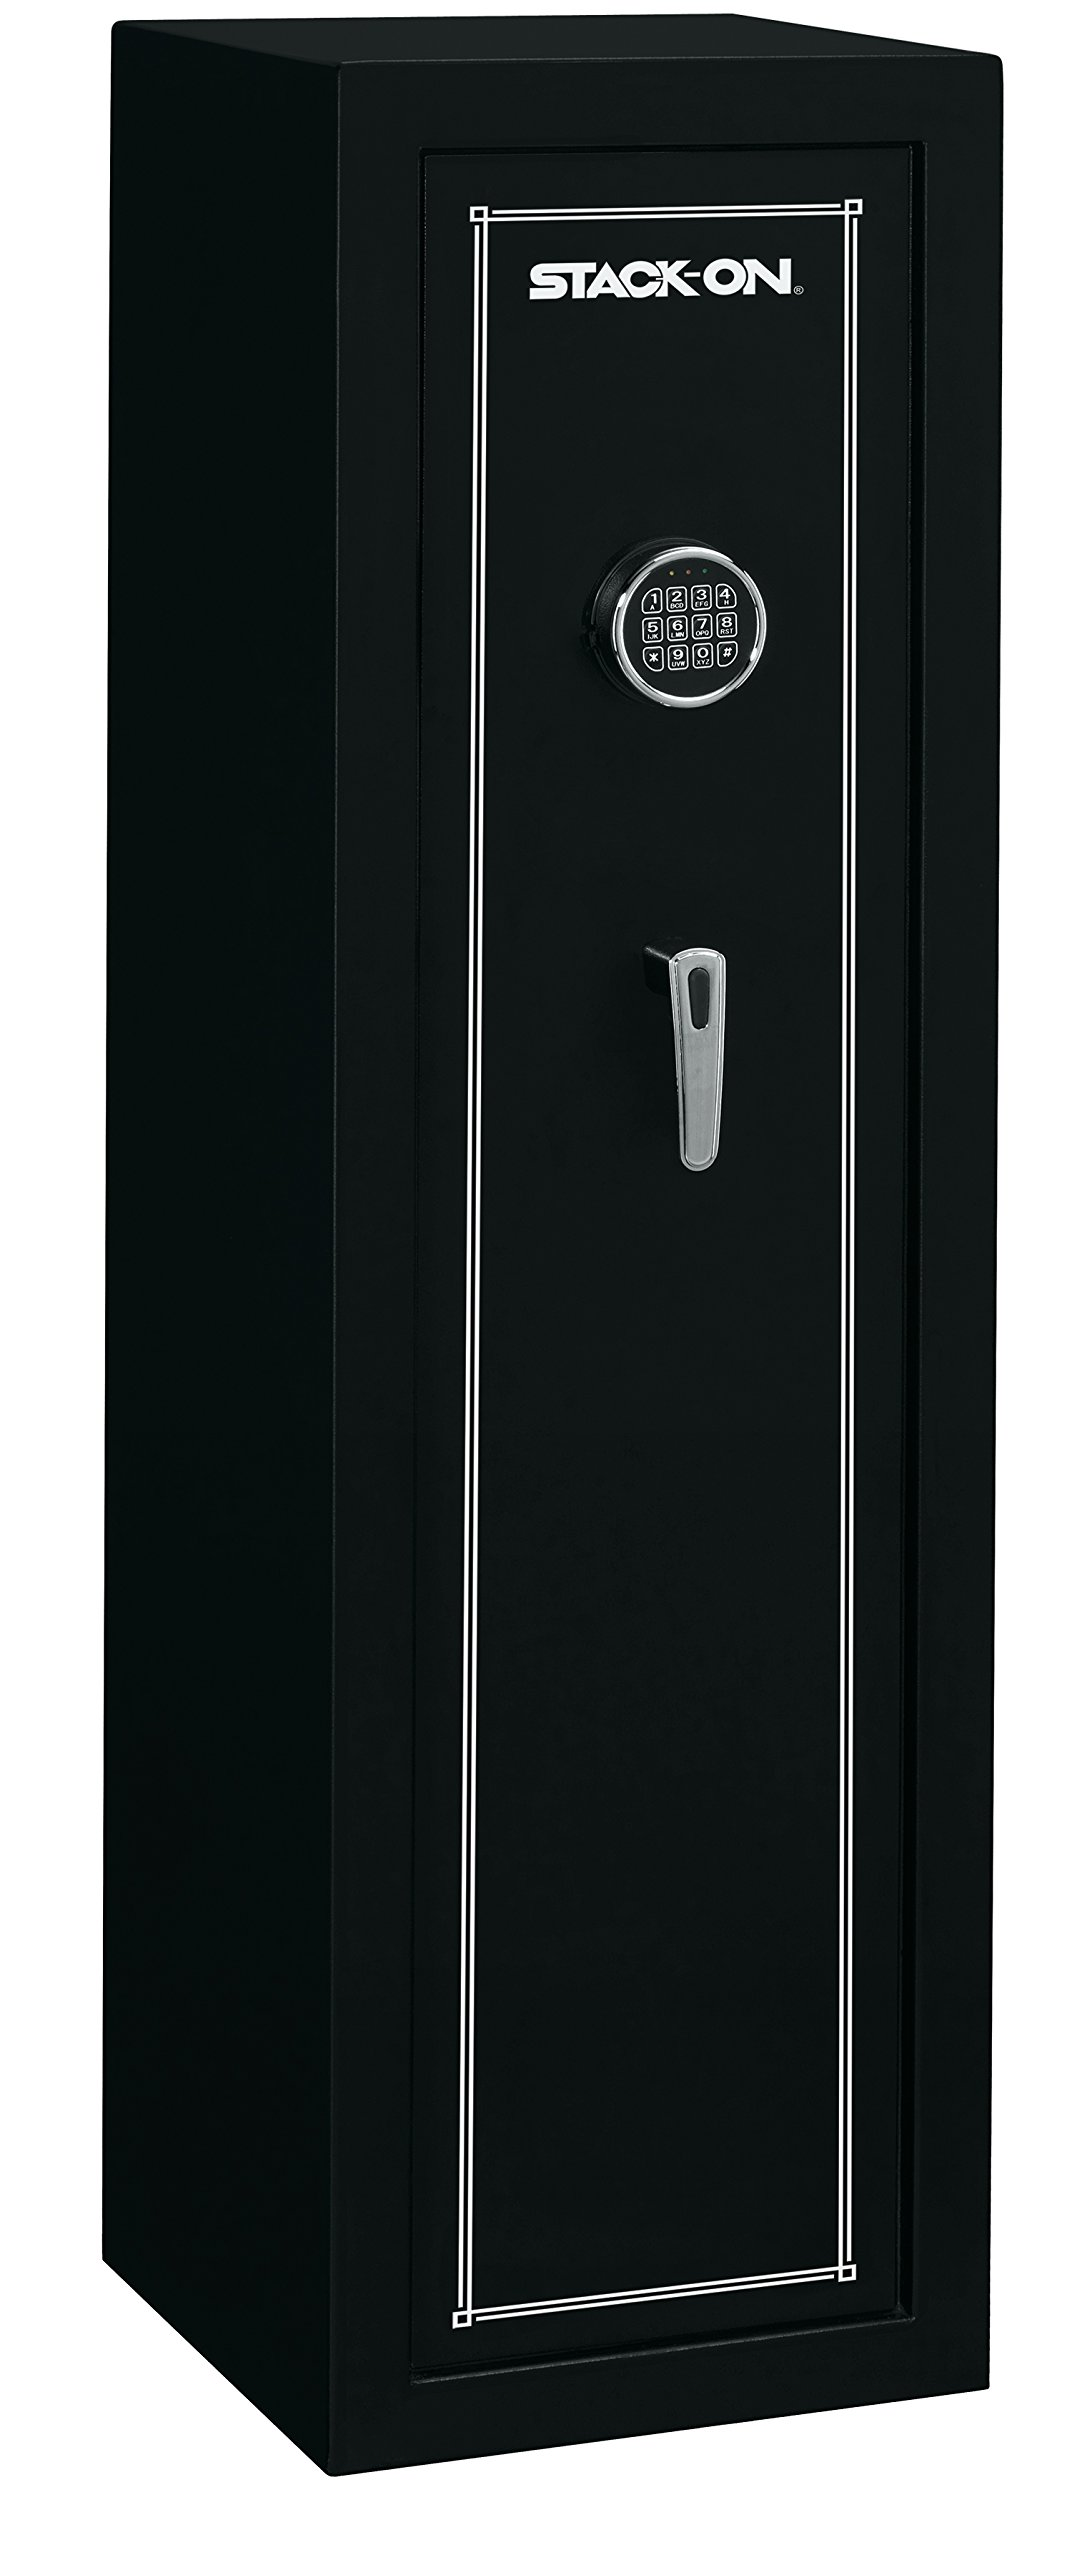 Stack-On SS-10-MB-E 10 Gun Fully Convertible Security Safe with Electronic Lock, Matte Black by Stack-On